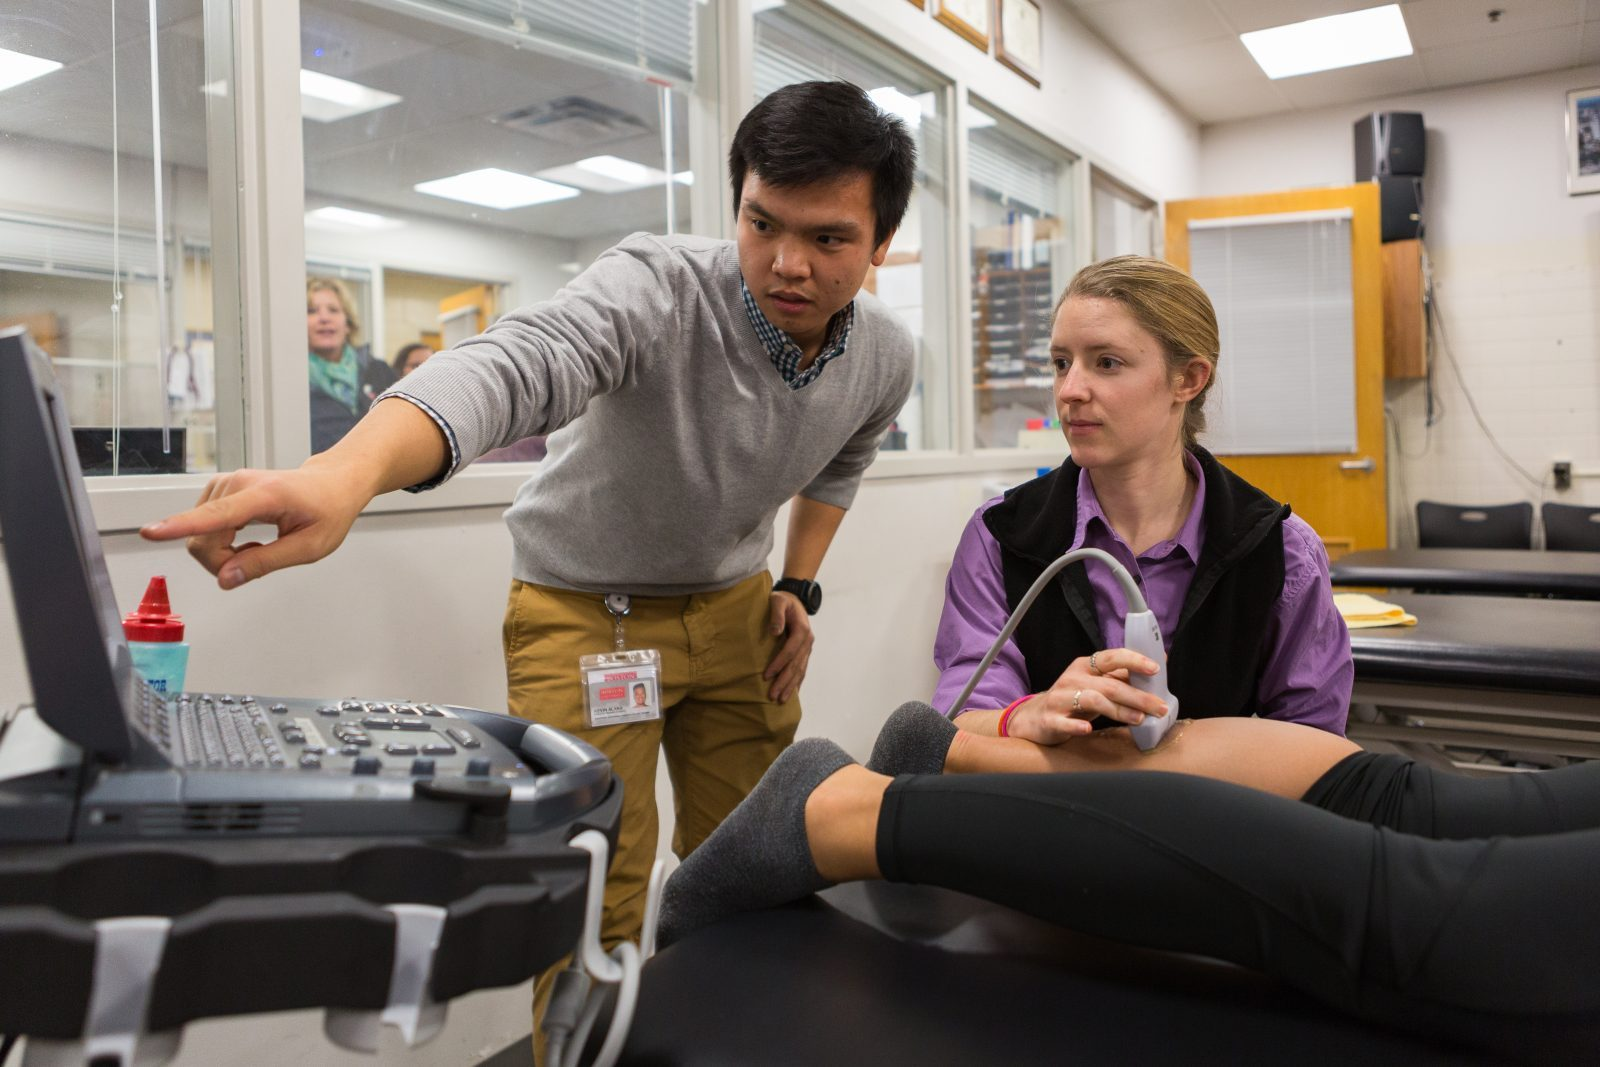 Athletic Training Session With Diagnostic Instrument